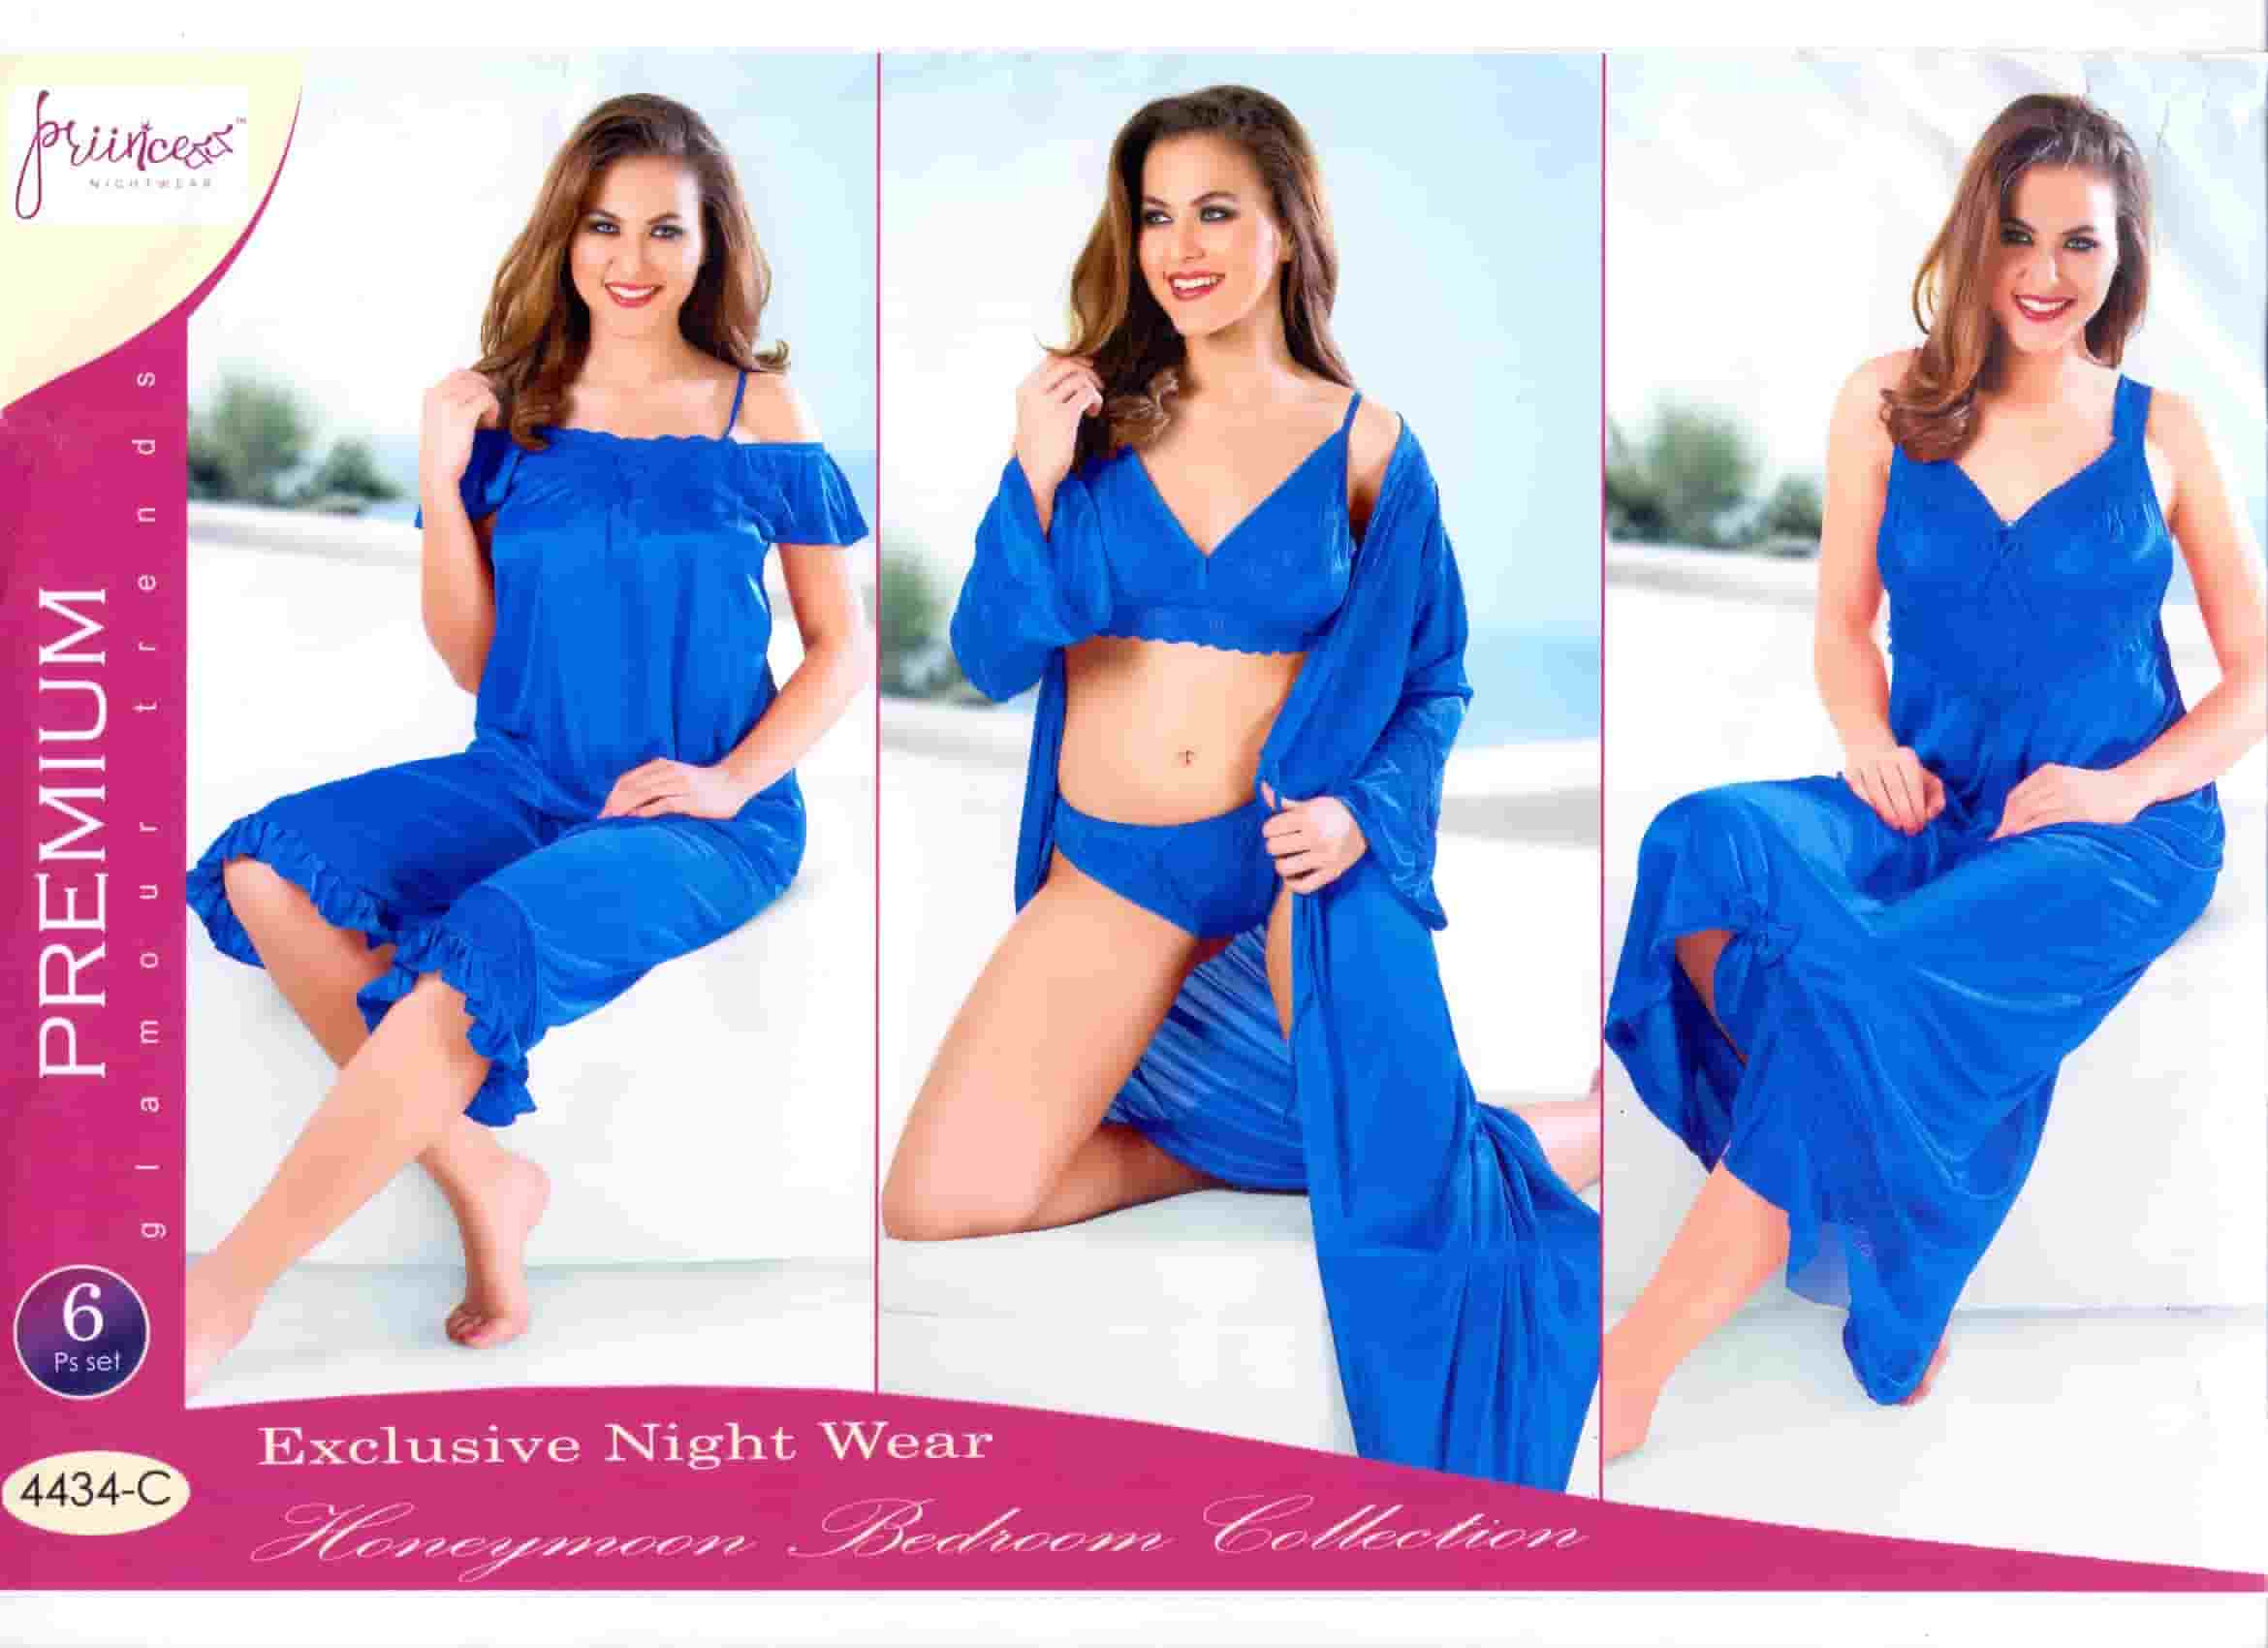 Honeymoon Nightwear